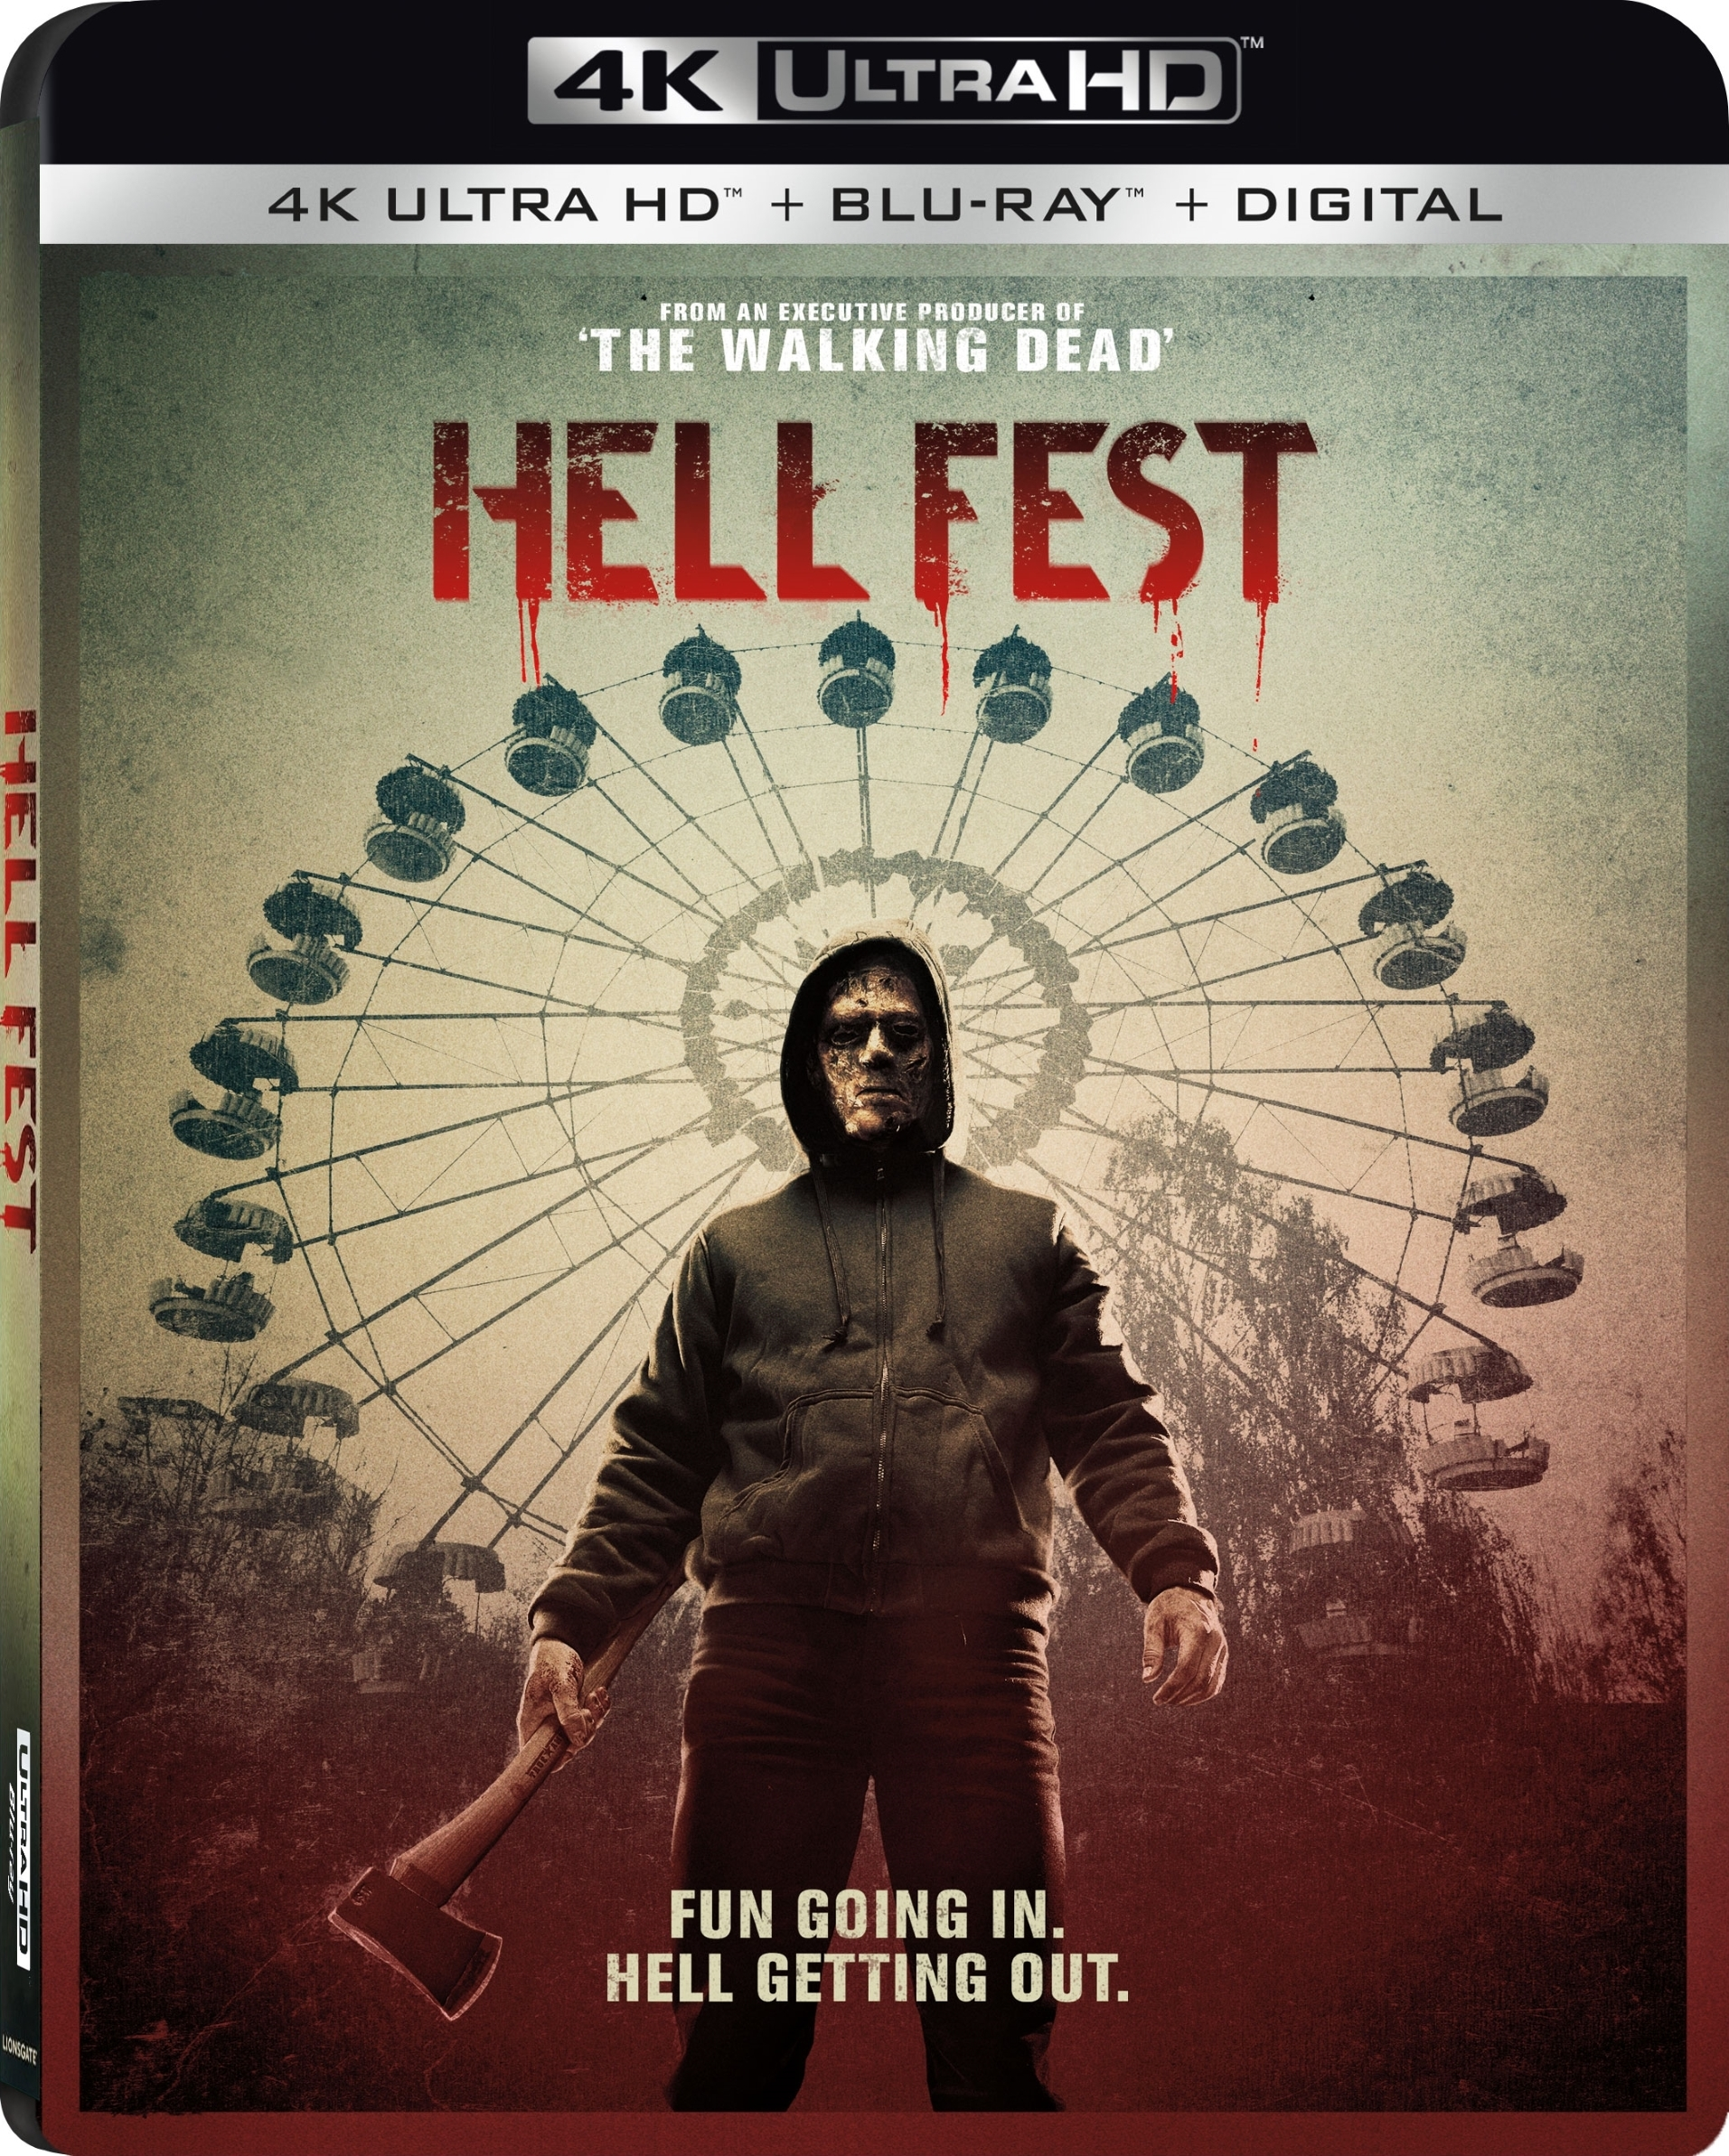 Hell Fest (2018) poster image